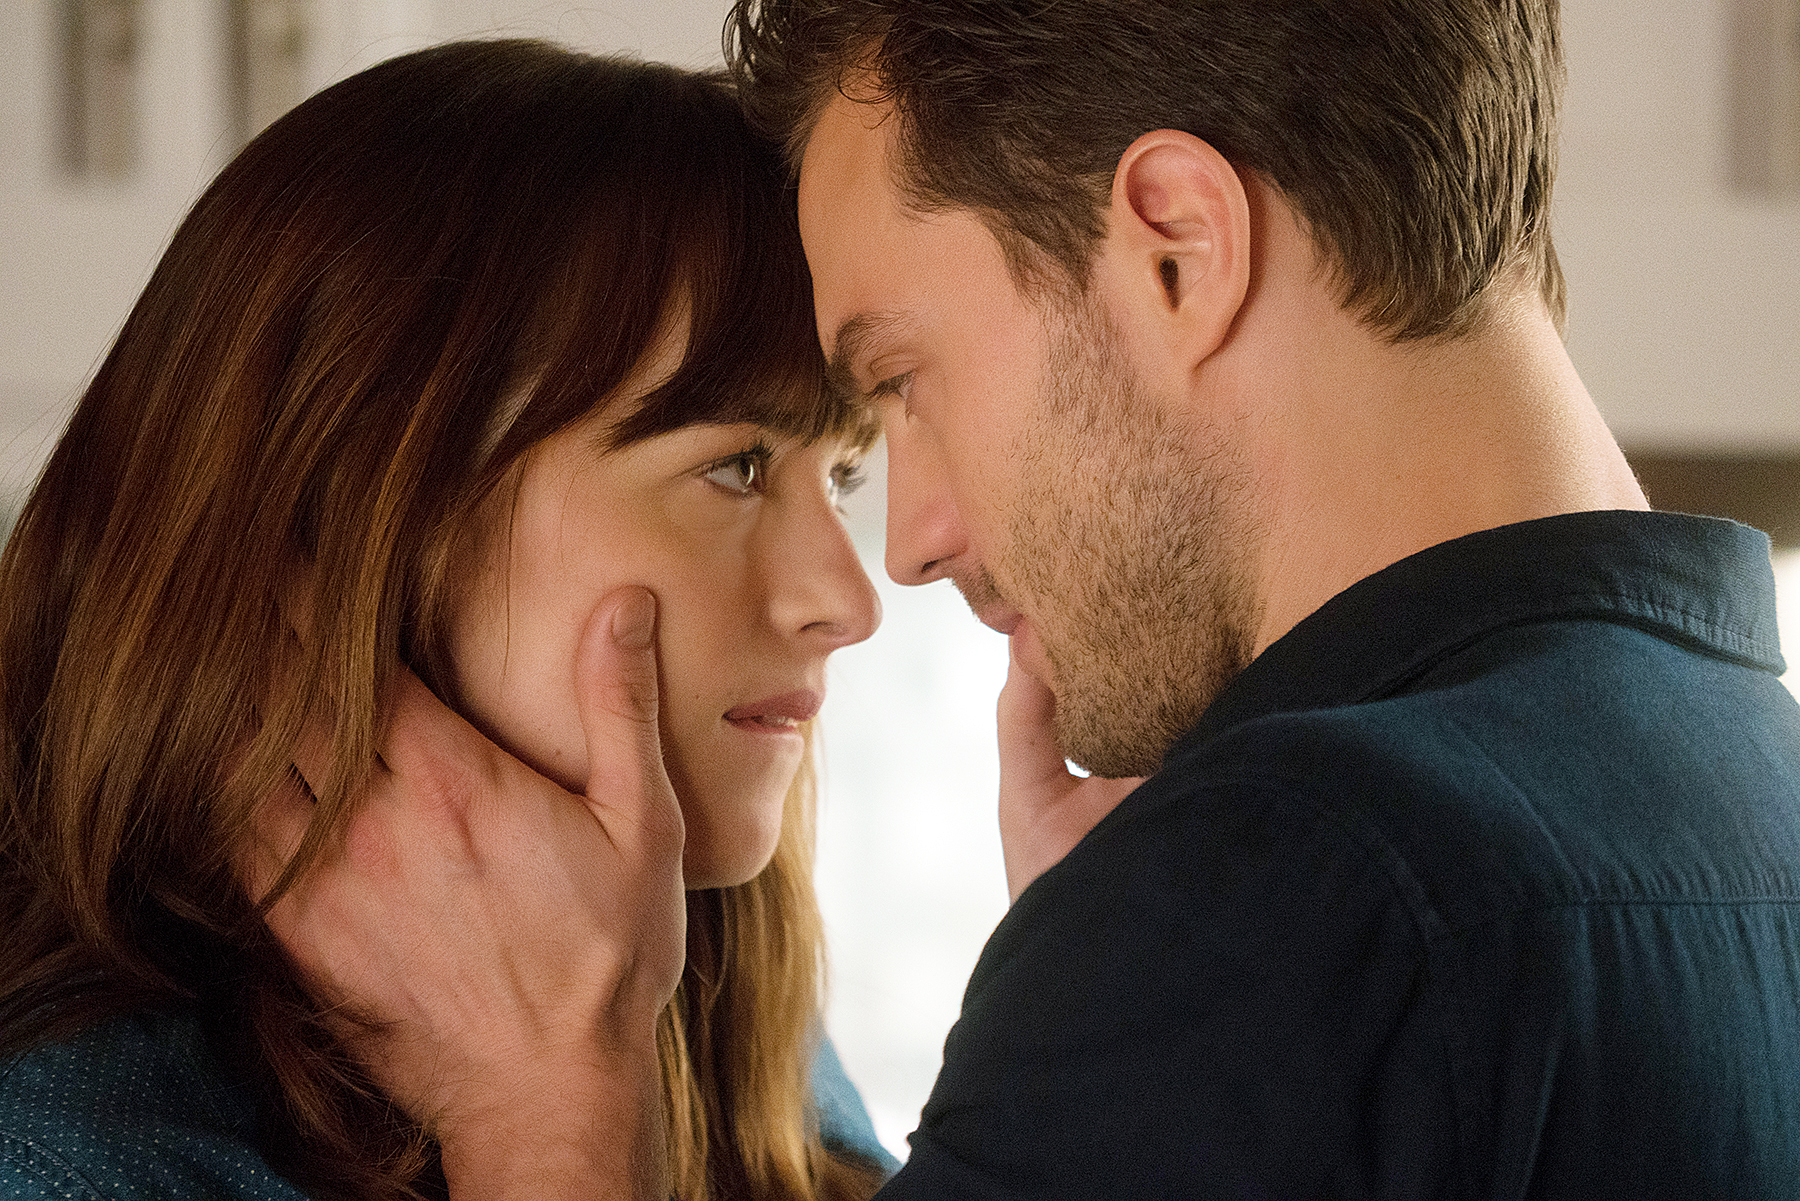 Jamie Dornan Dakota Johnson Fifty Shades Darker